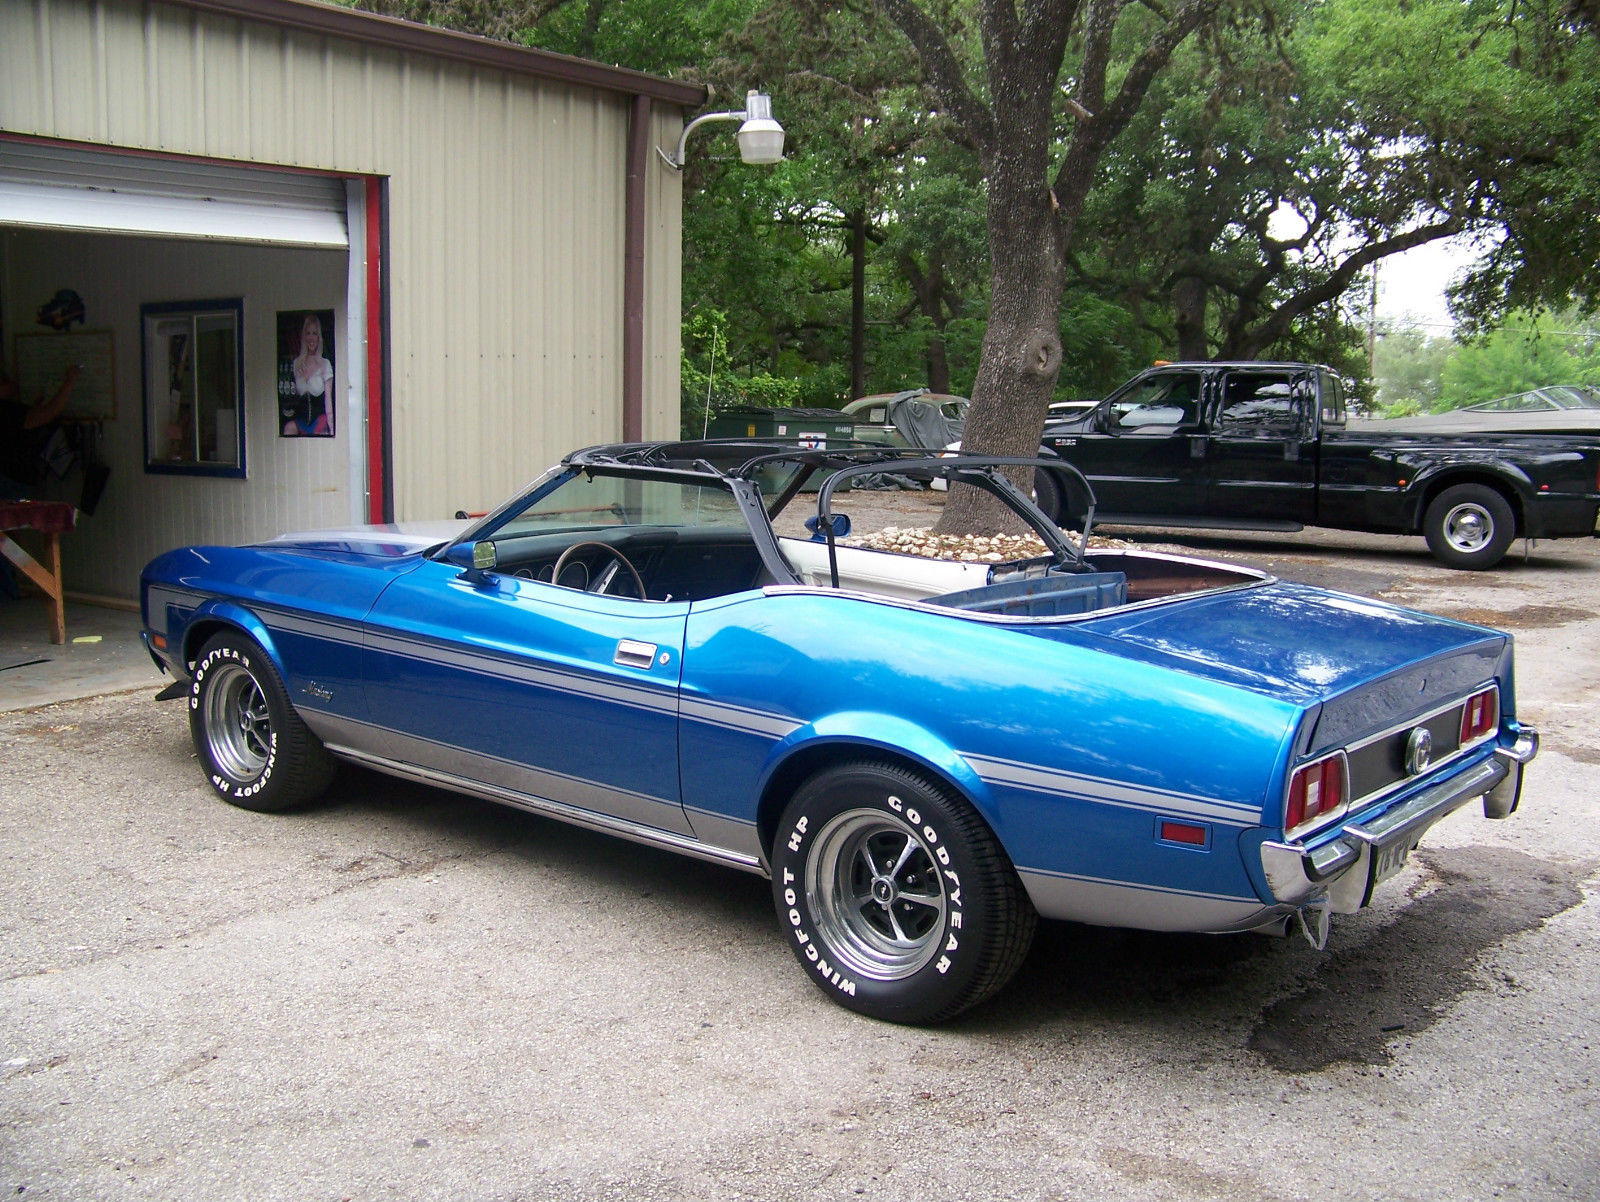 1973 ford mustang convertible blue and silver ac white interior and top. Black Bedroom Furniture Sets. Home Design Ideas